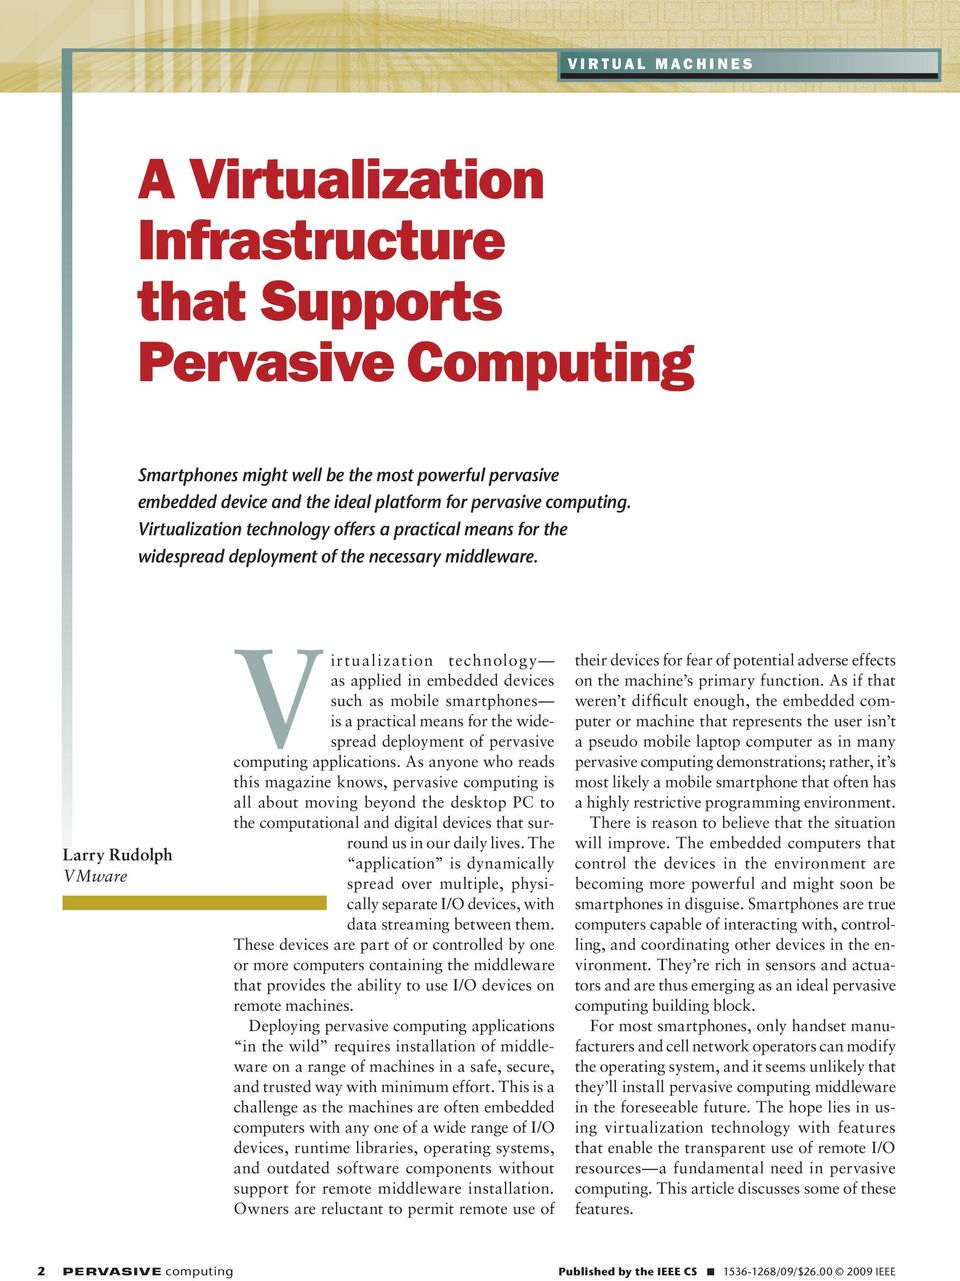 Larry Rudolph VMware Vir tualization technolog y as applied in embedded devices such as mobile smartphones is a practical means for the widespread deployment of pervasive computing applications.